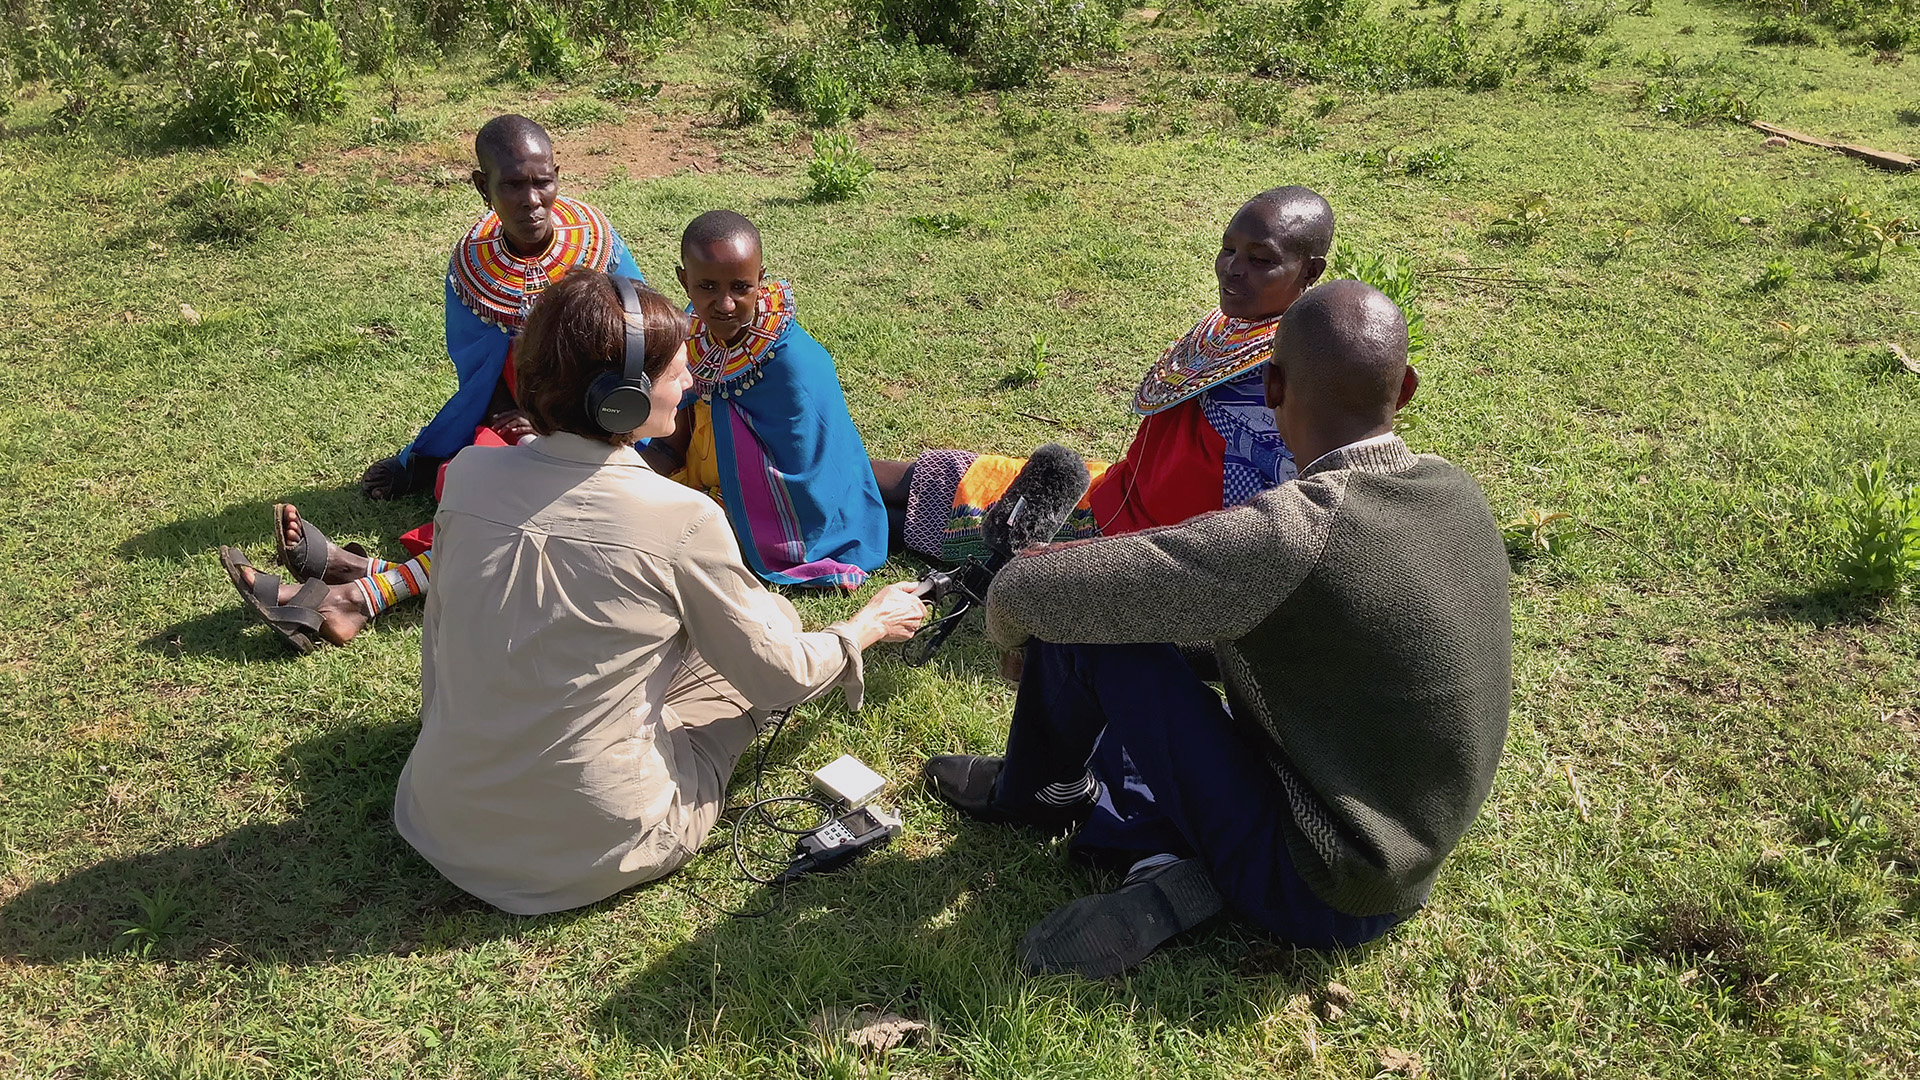 Women in Kenya talk with American woman reporter with microphone